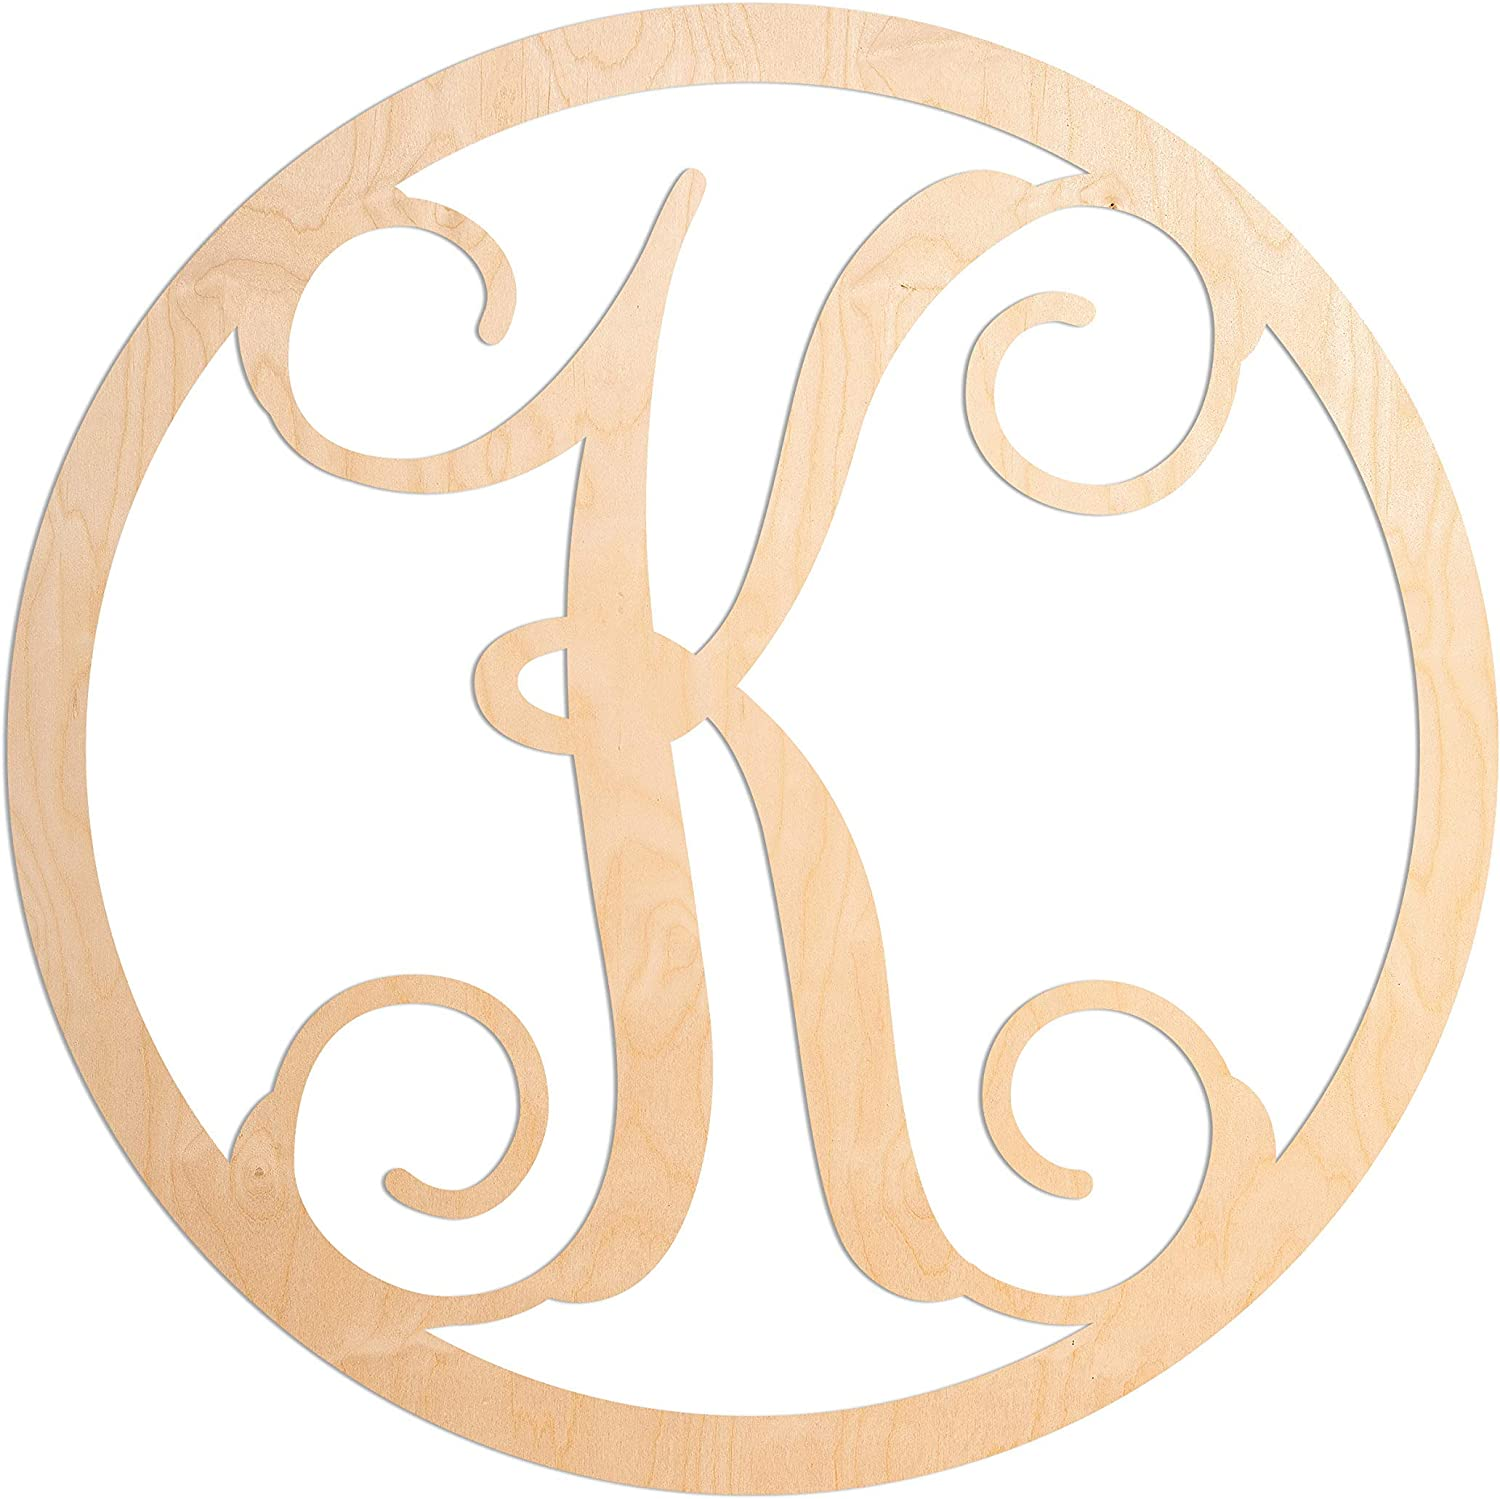 UNFINISHEDWOODCO Single Letter Circle Monogram Room Décor - 19 Inches Tall - Unfinished Circle Vine Cursive Wood Initials for Bedroom, Wall Decor Above Baby Crib, Nursery or Teen Room - Letter K